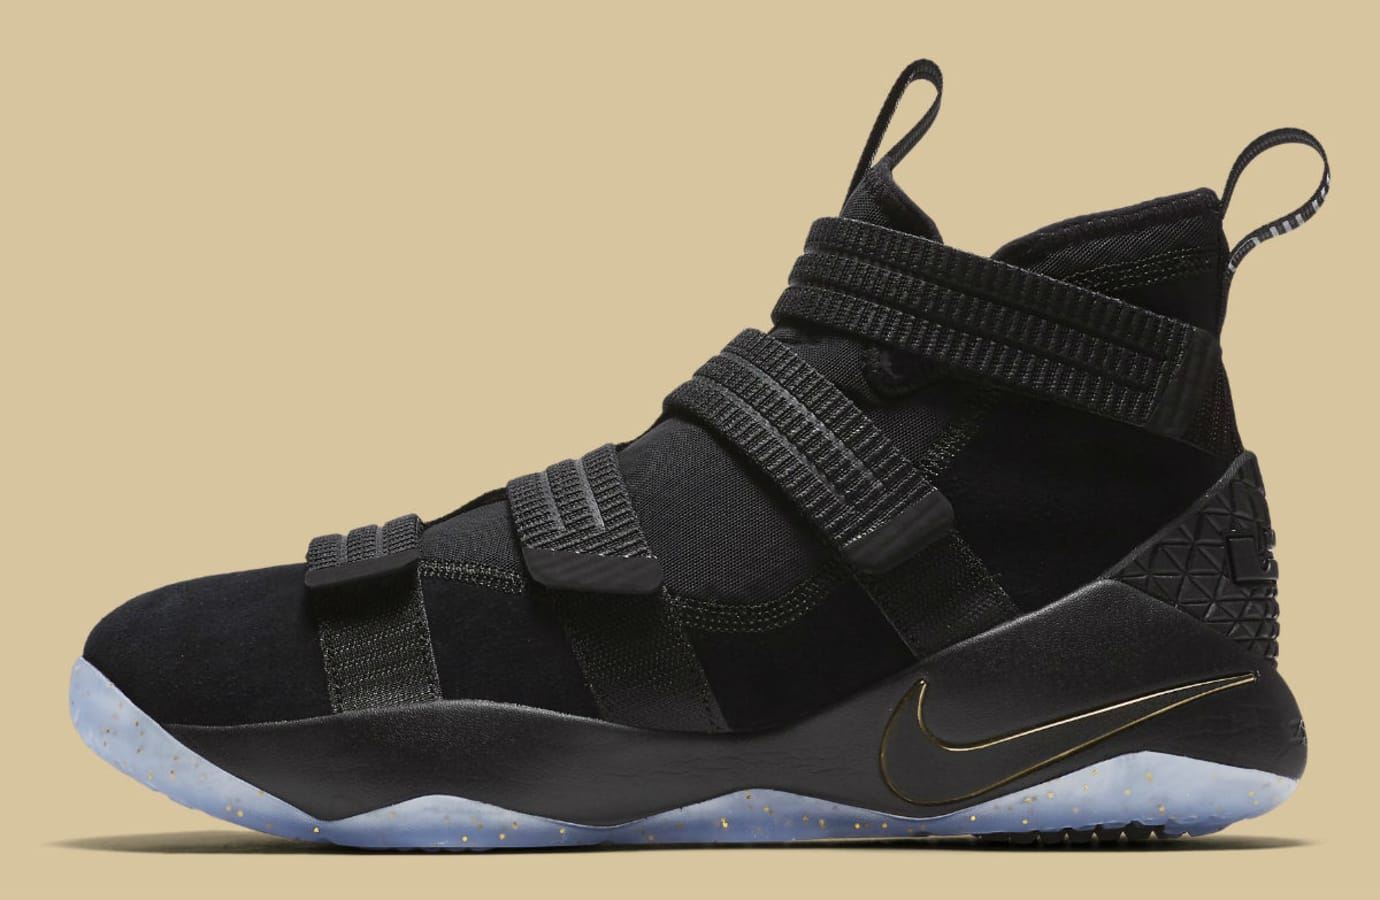 Nike LeBron Soldier 11 SFG Black/Gold Finals Release Date Profile